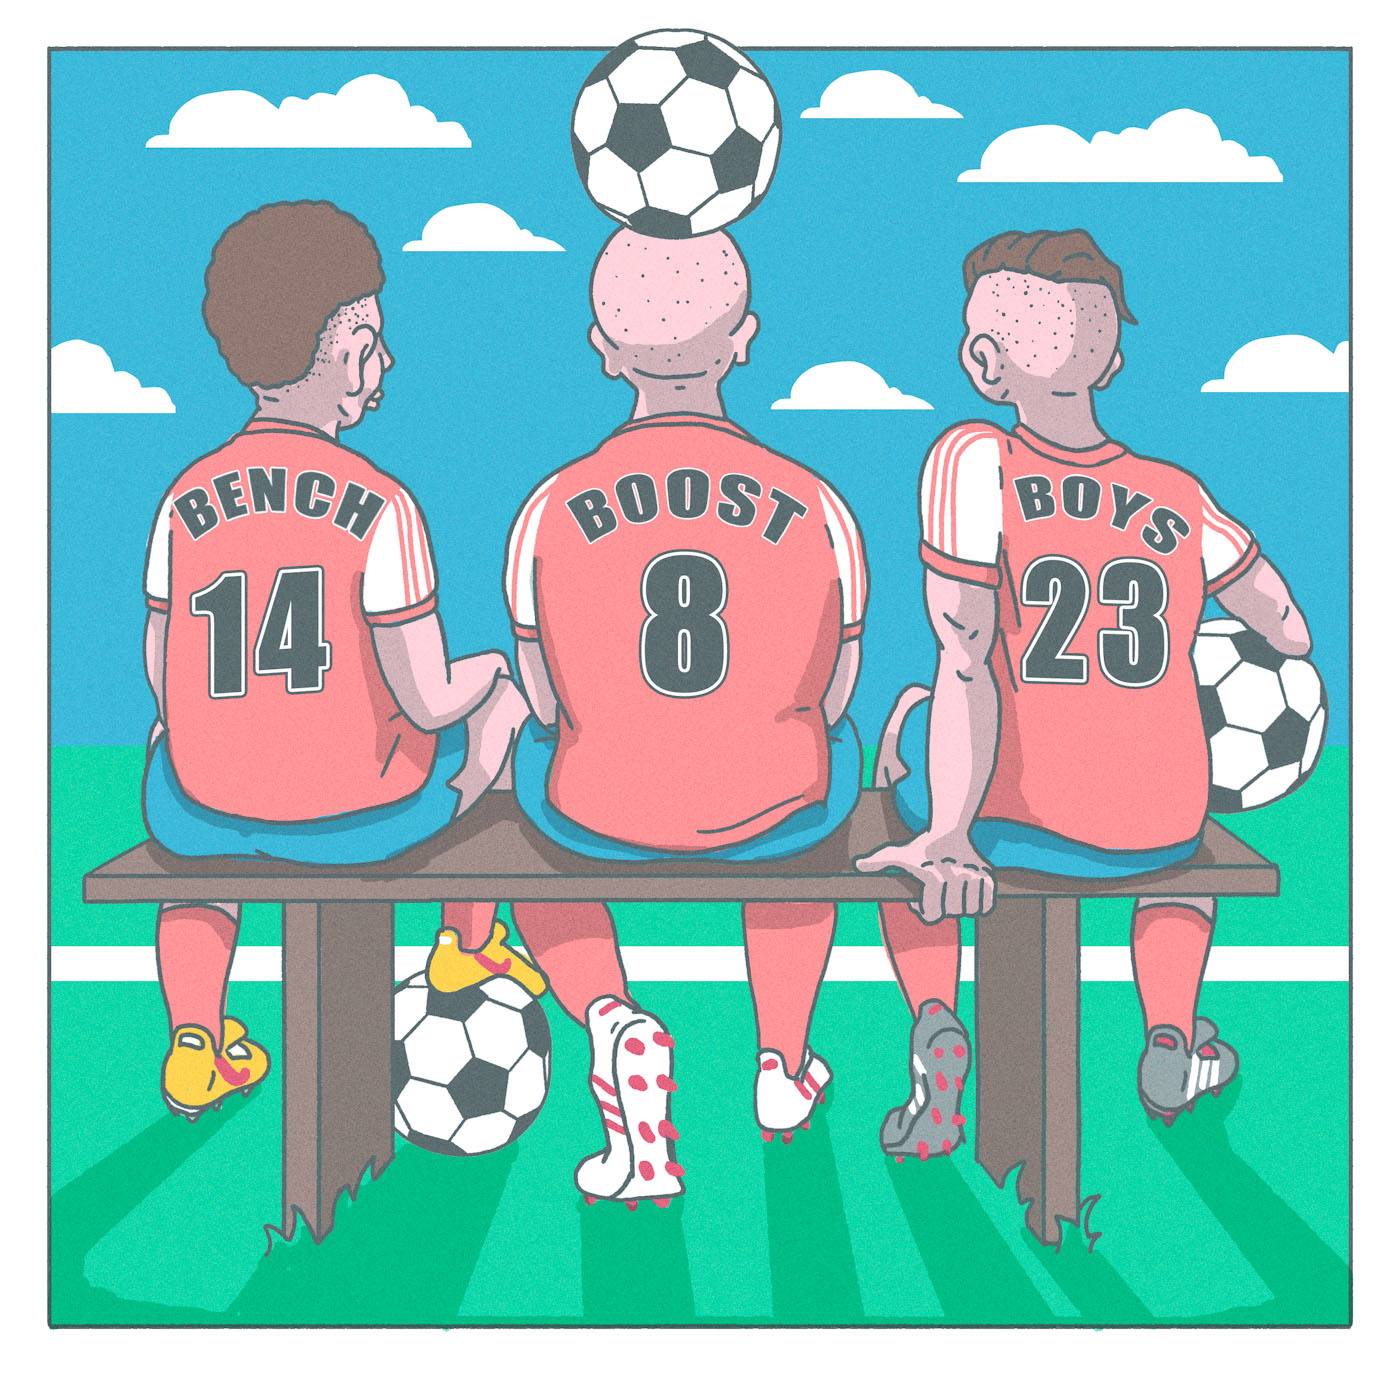 Show artwork for Bench Boost Boys